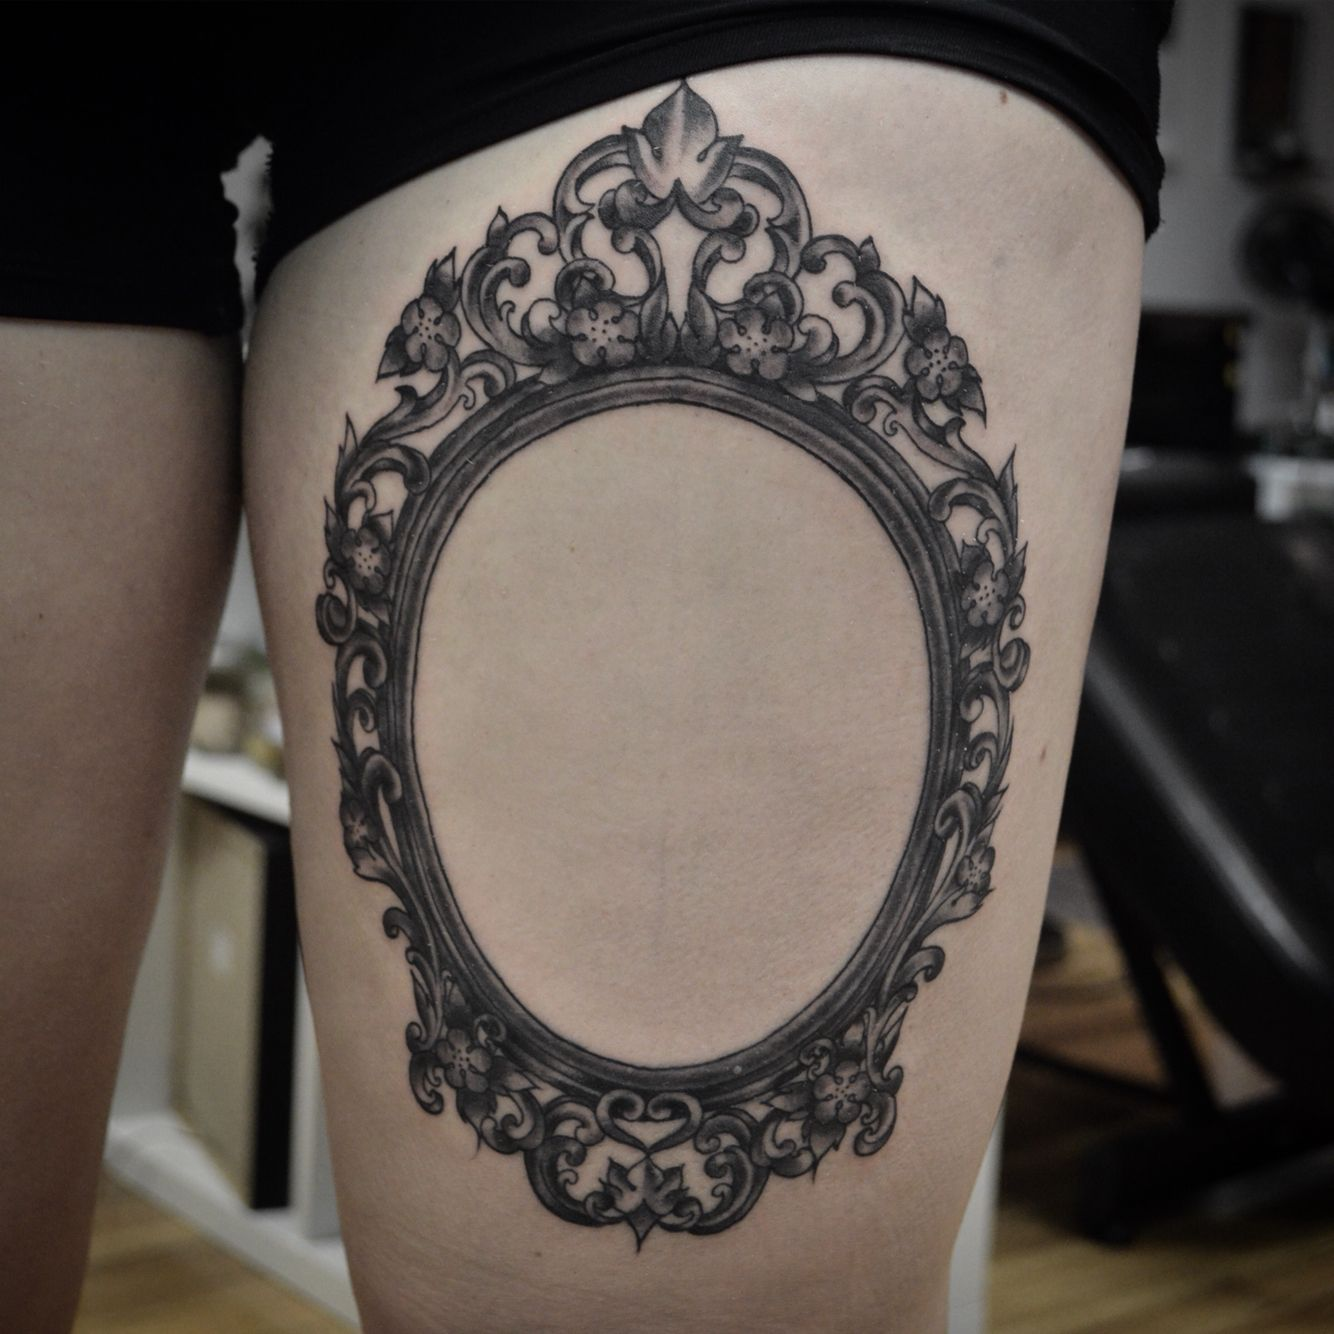 Spiegel Tattoo Filigree Frame Tattoo By Susie Humphrey At Pittsburgh Tattoo